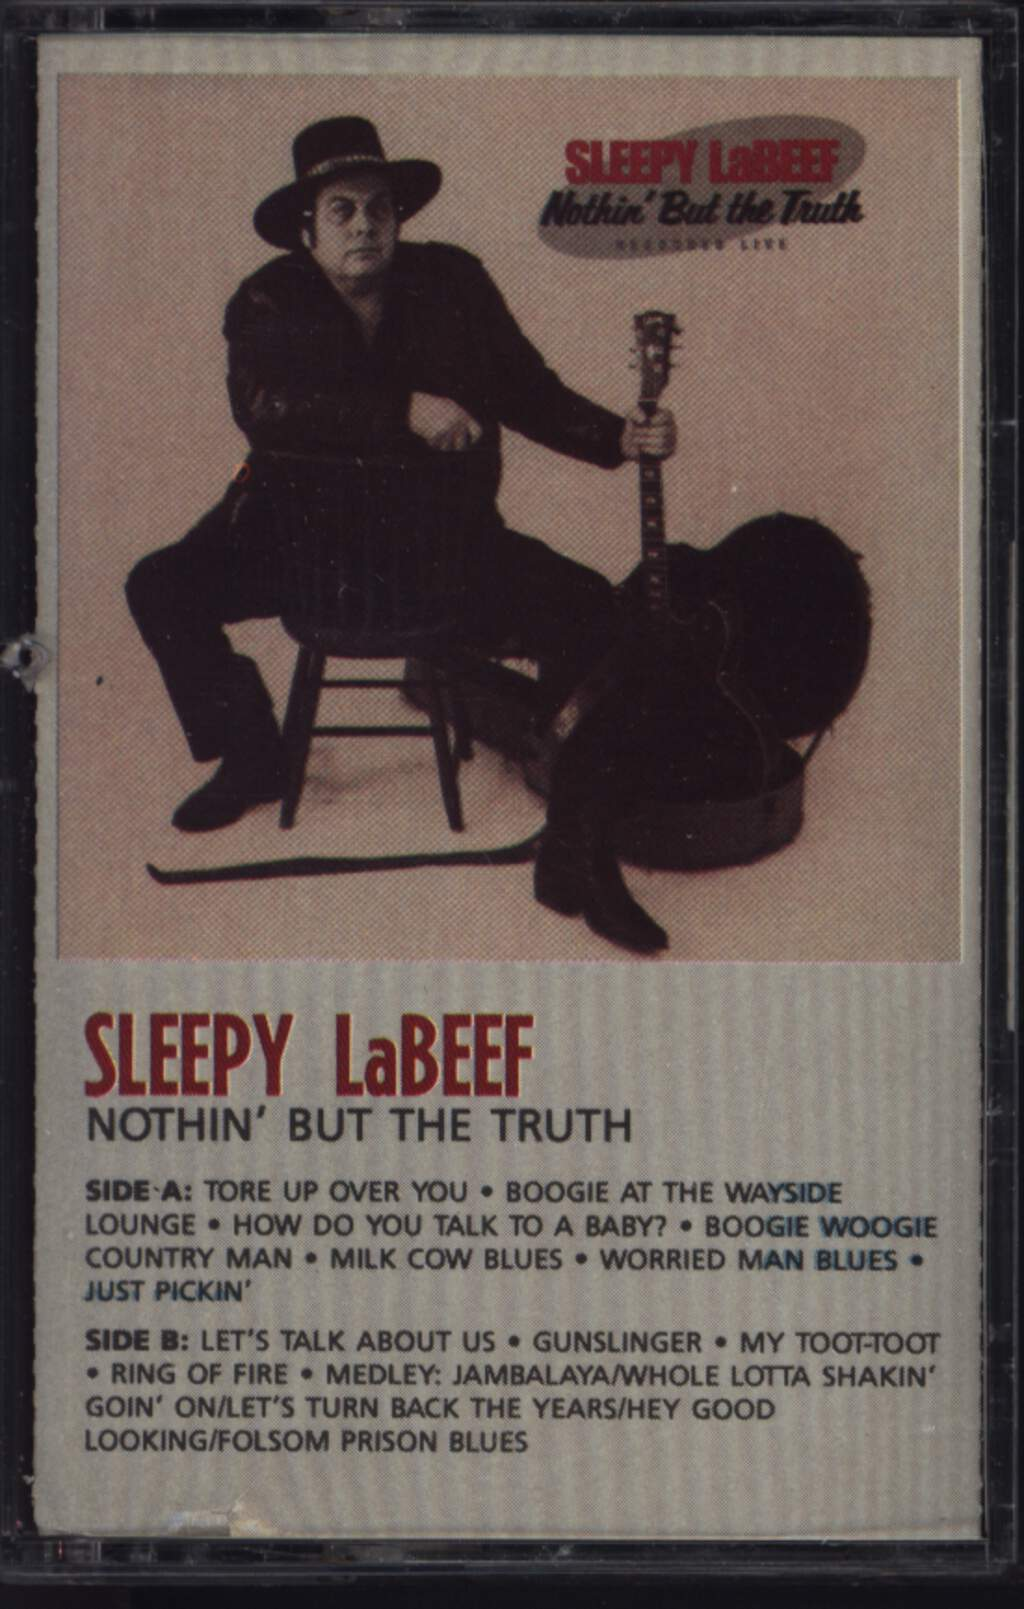 Sleepy La Beef: Nothin' But The Truth, Compact Cassette